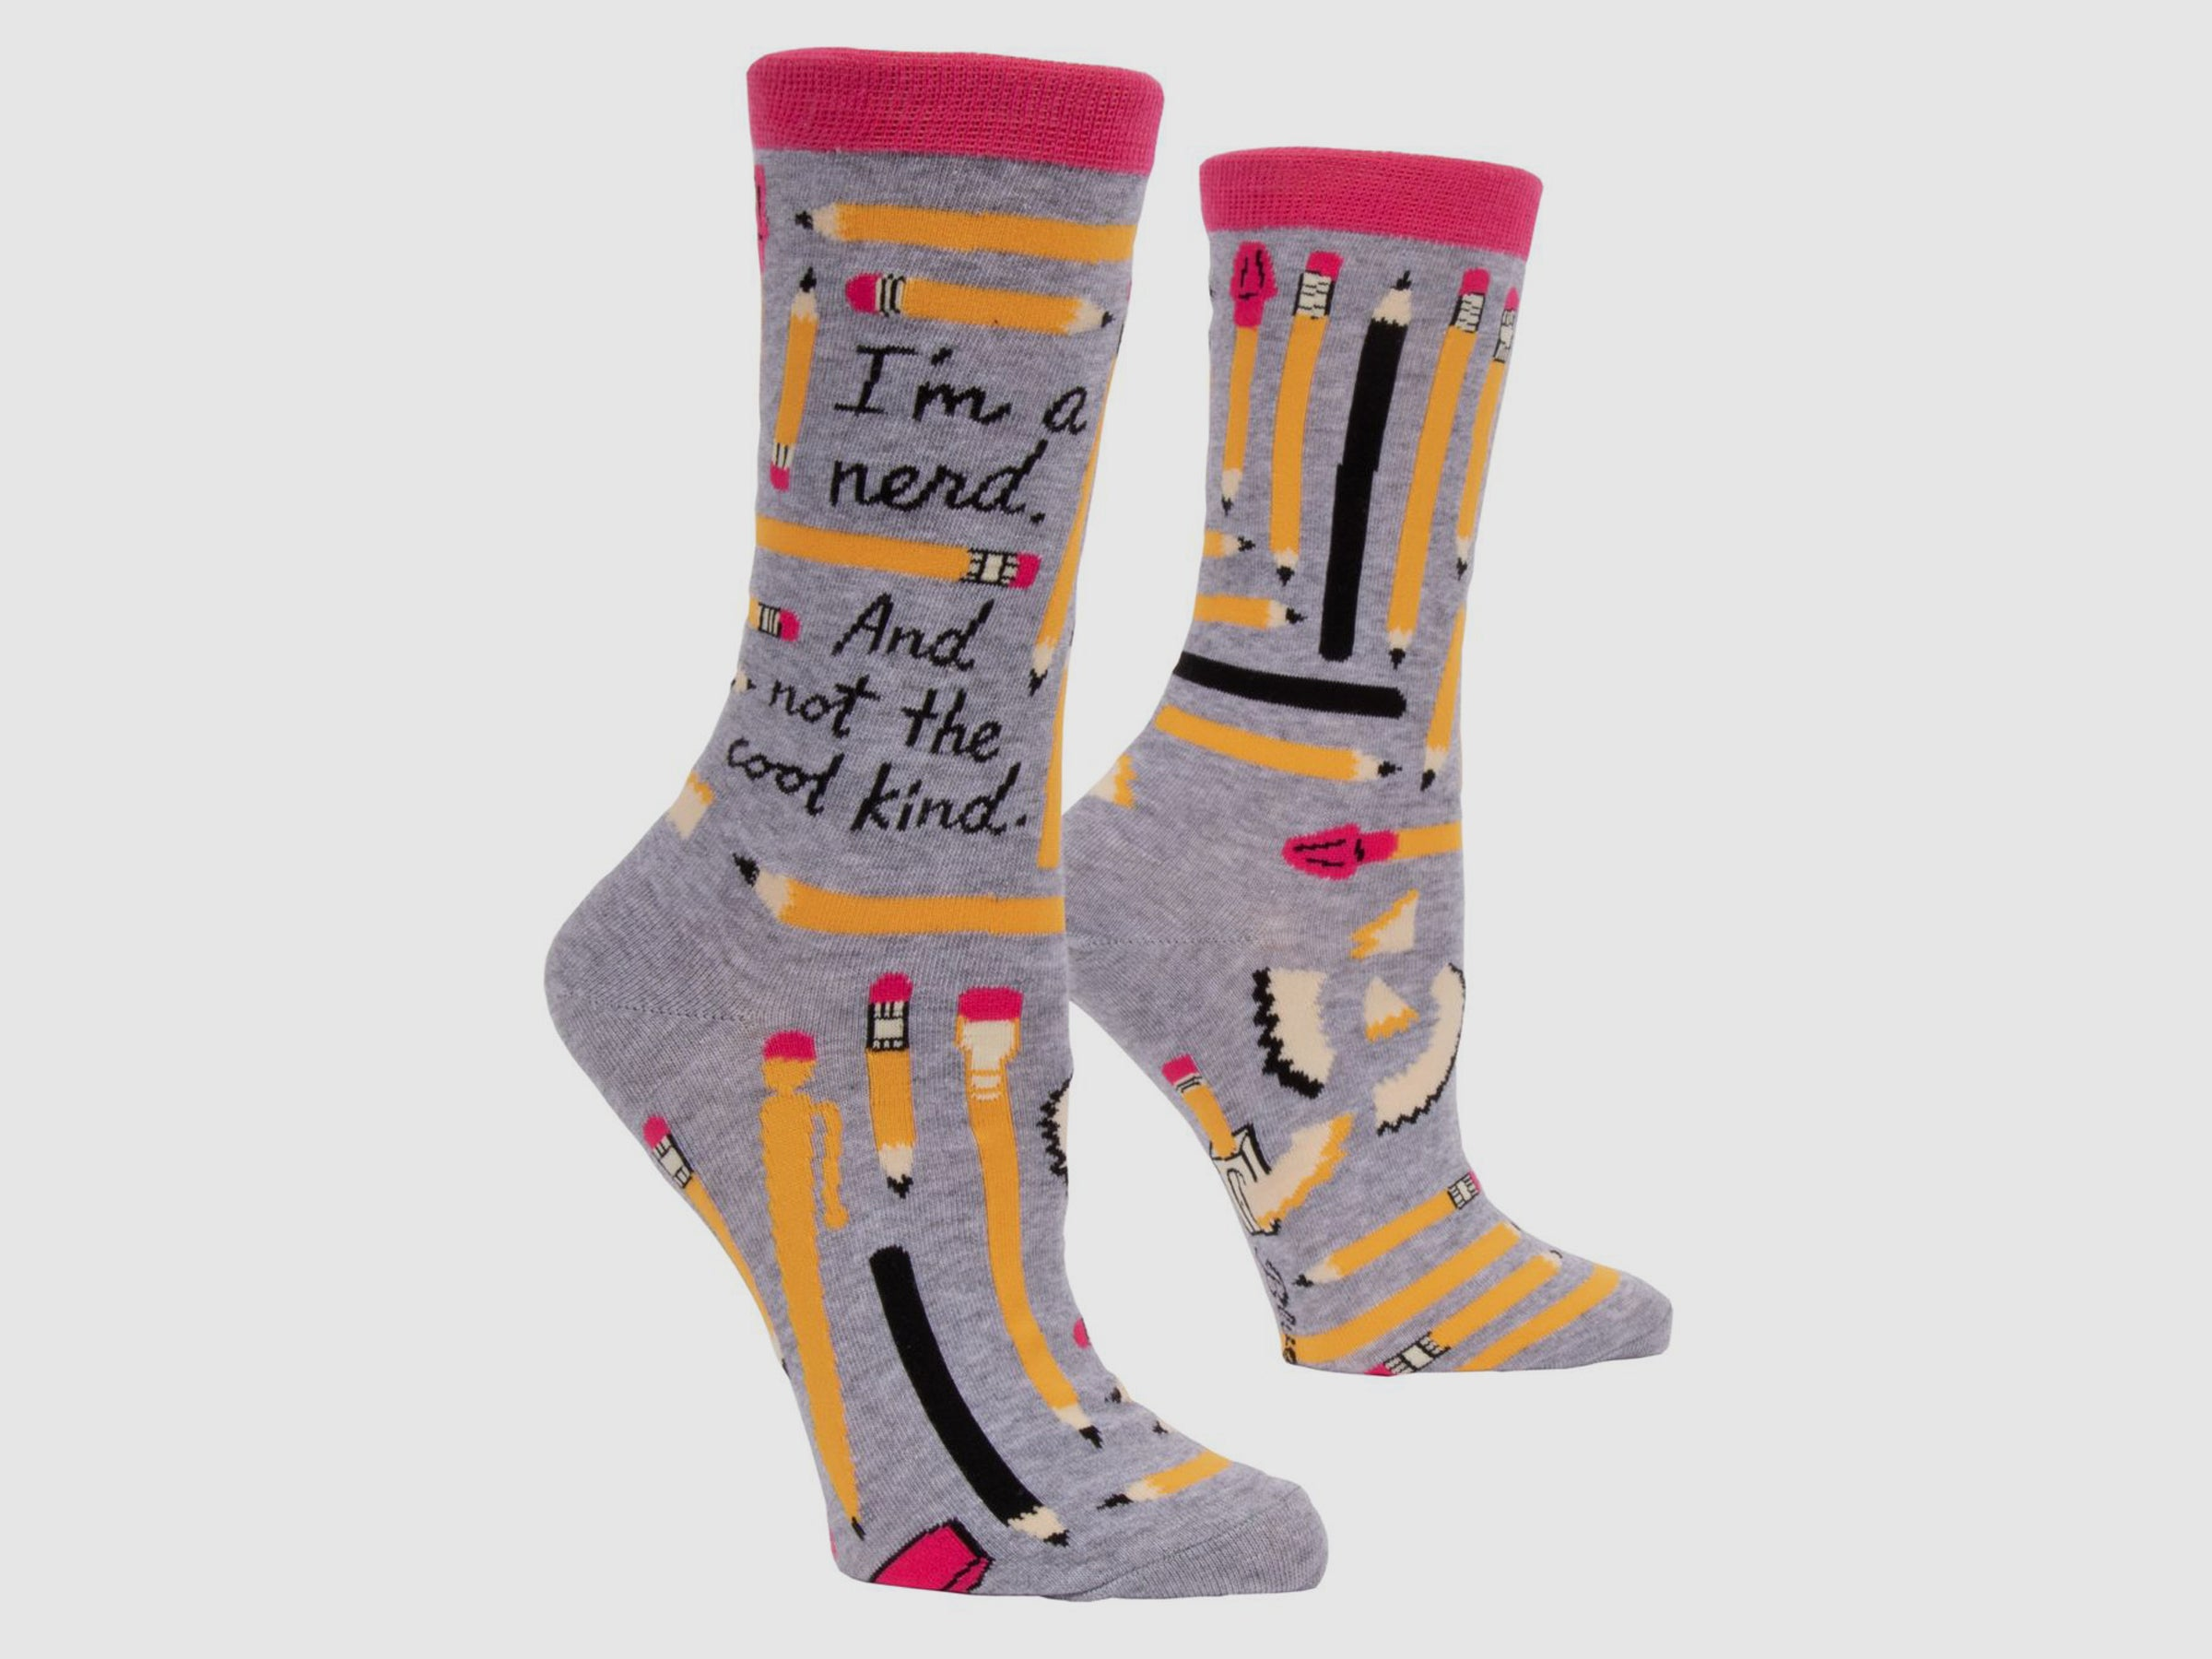 I'M A NERD. AND NOT THE COOL KIND - Women's Crew Socks